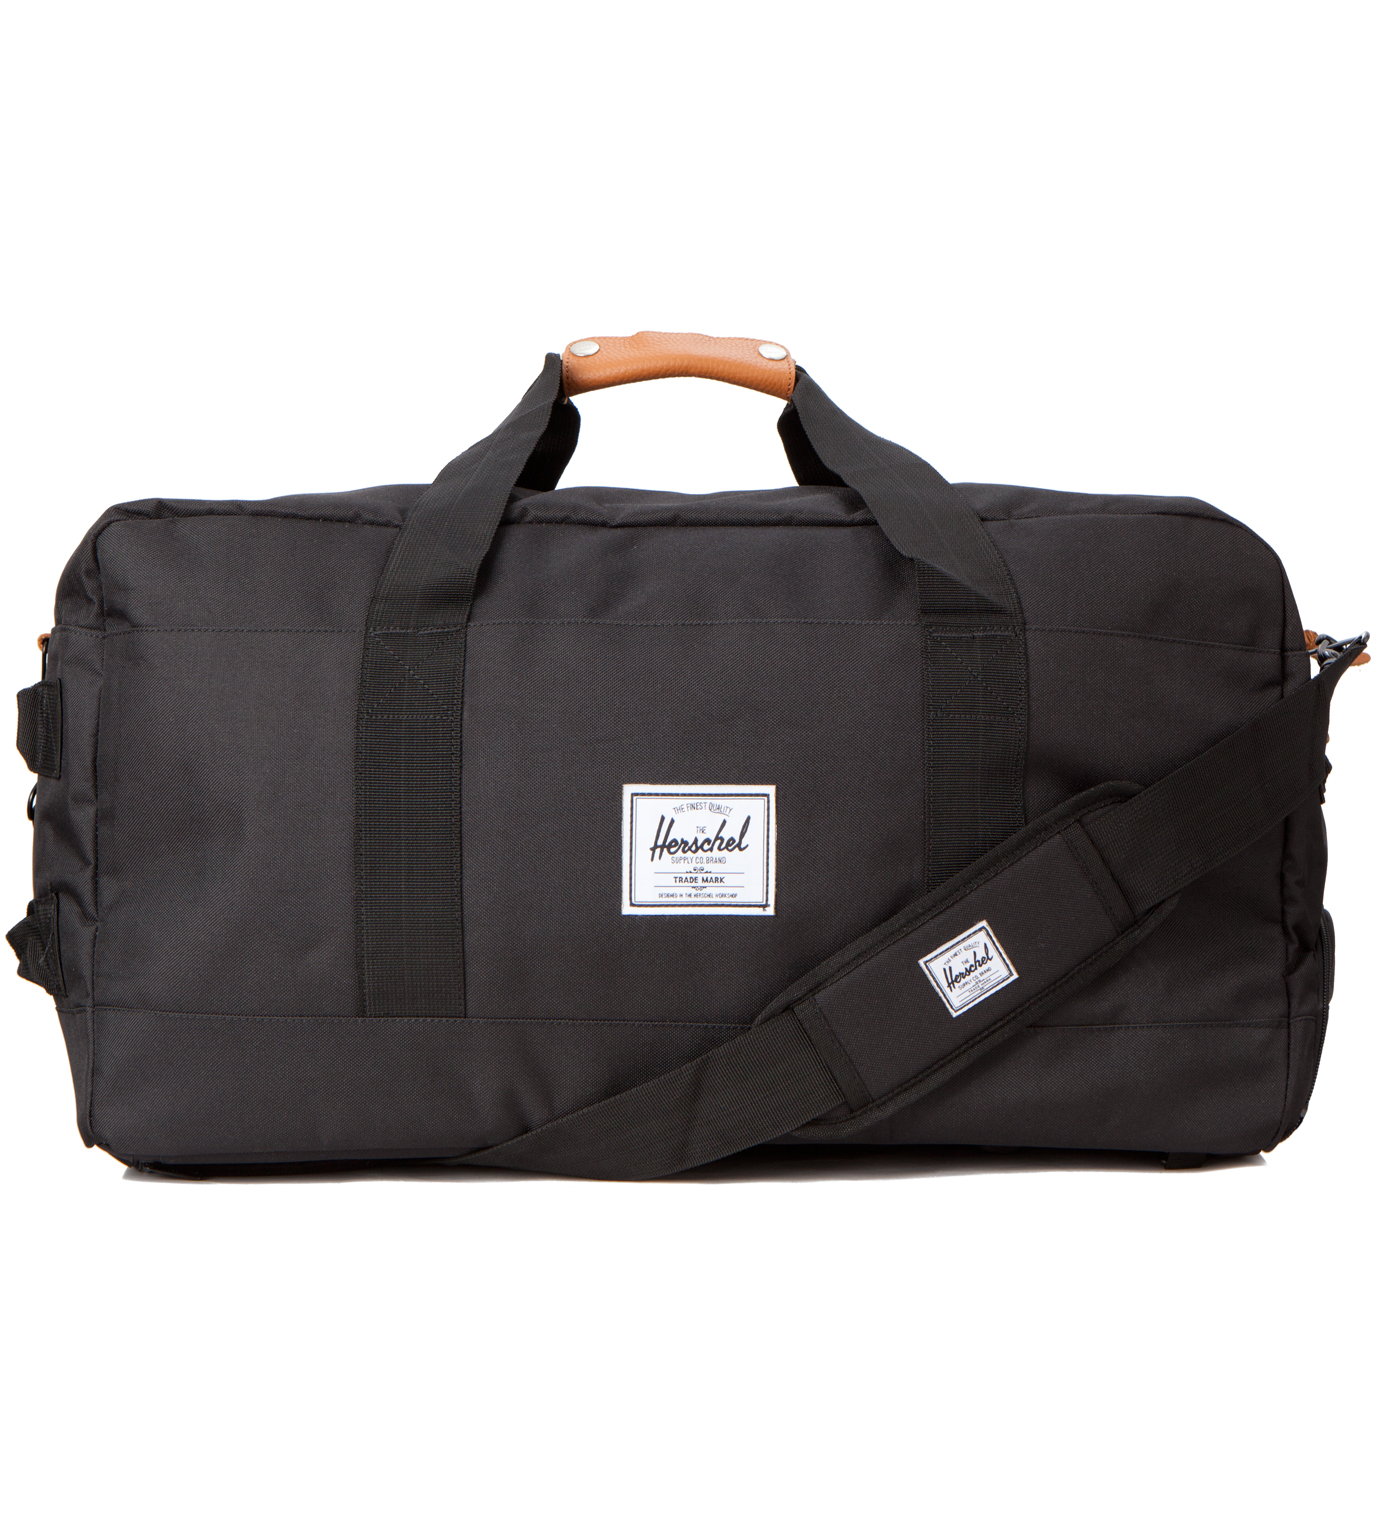 Herschel Supply Co. Black Outfitter Travel Bag